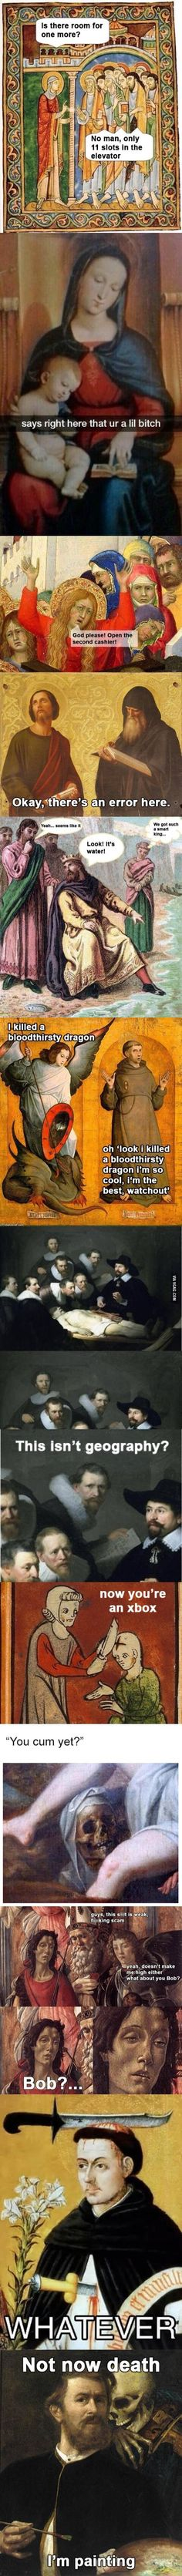 Old paintings with subtitles part I (http://9gag.com/gag/arRqKR5?ref=9d)